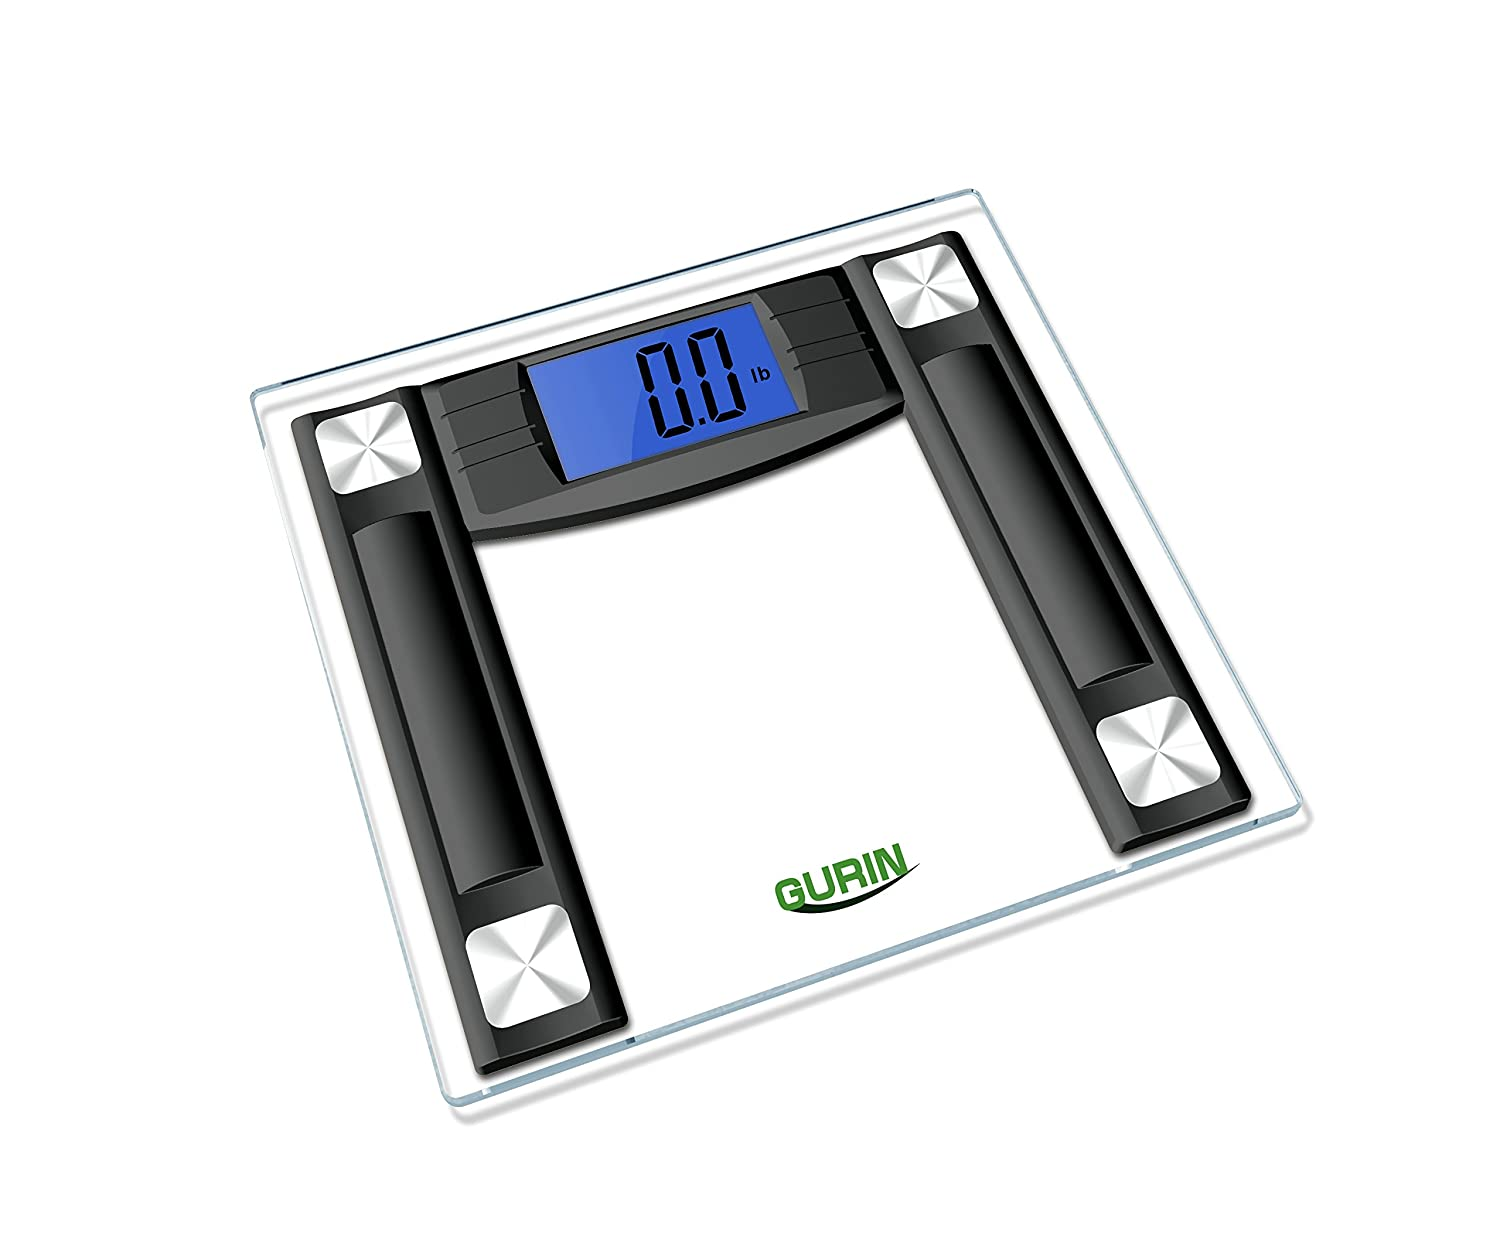 Bathroom scale accuracy consistency - Amazon Com Gurin High Accuracy Digital Bathroom Scale With 4 3 Display And Step On Technology Health Personal Care